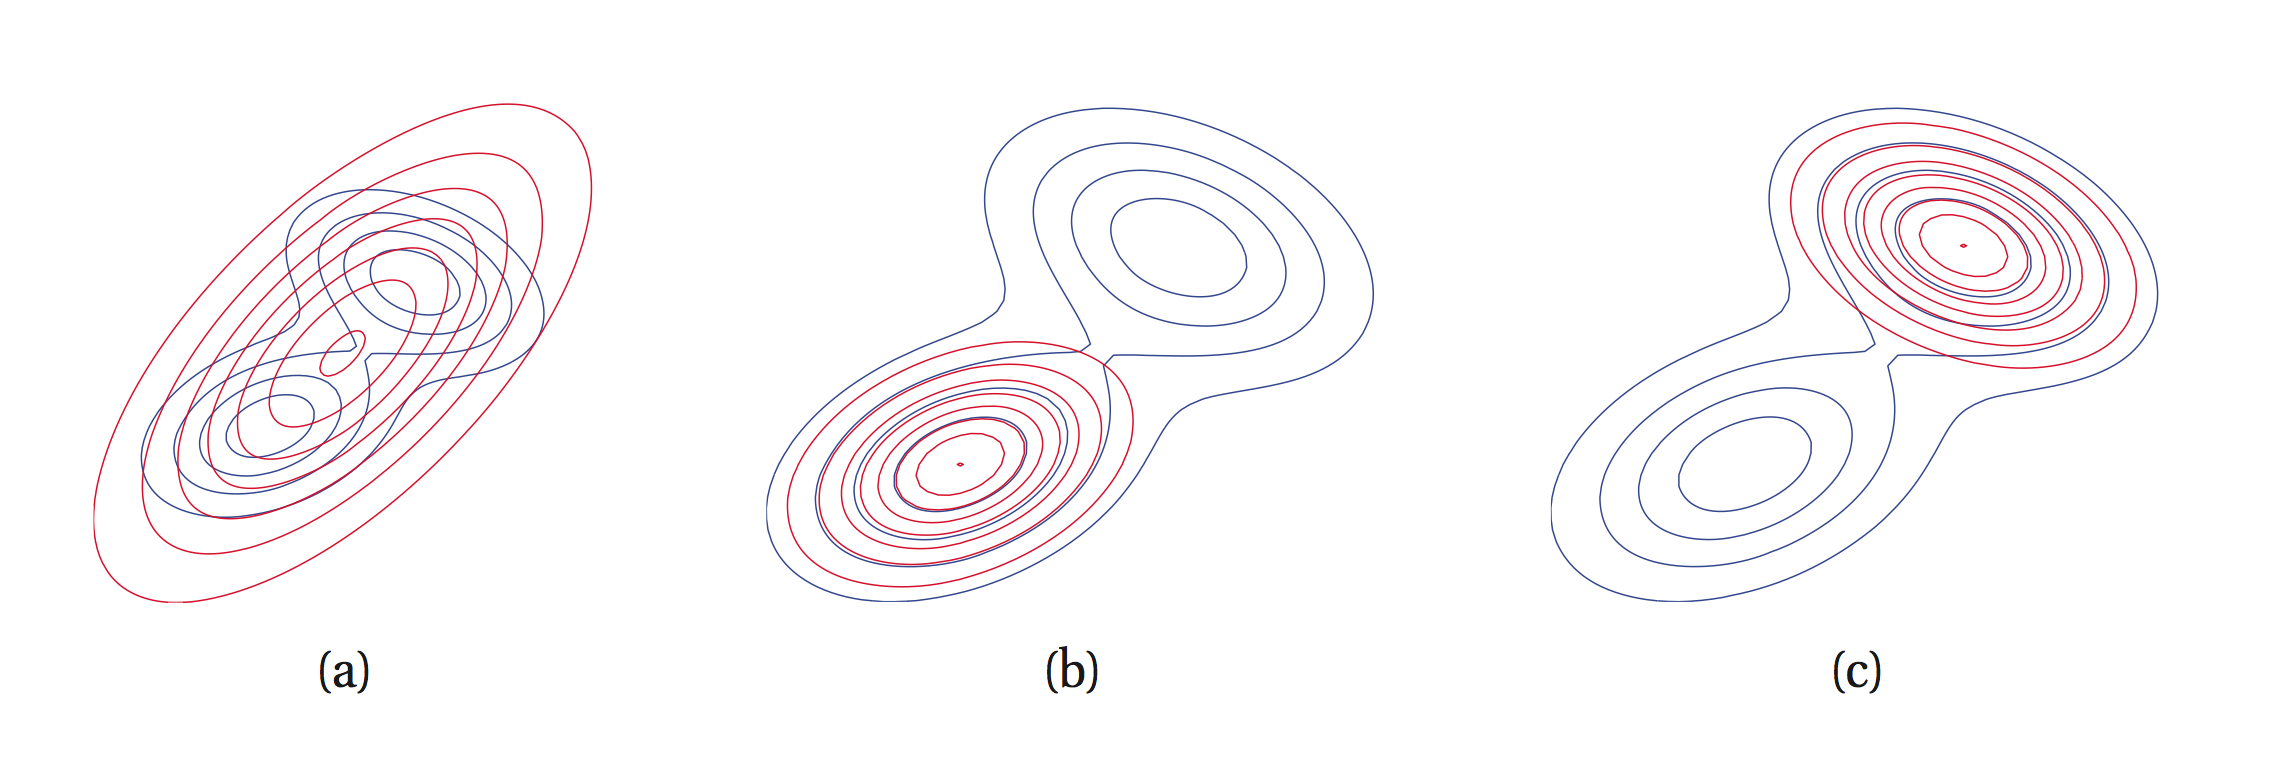 Fitting a unimodal approximating distribution q (red) to a multimodal p (blue). Using KL(p||q) leads to a q that tries to cover both modes (a). However, using KL(q||p) forces q to choose one of the two modes of p (b, c).